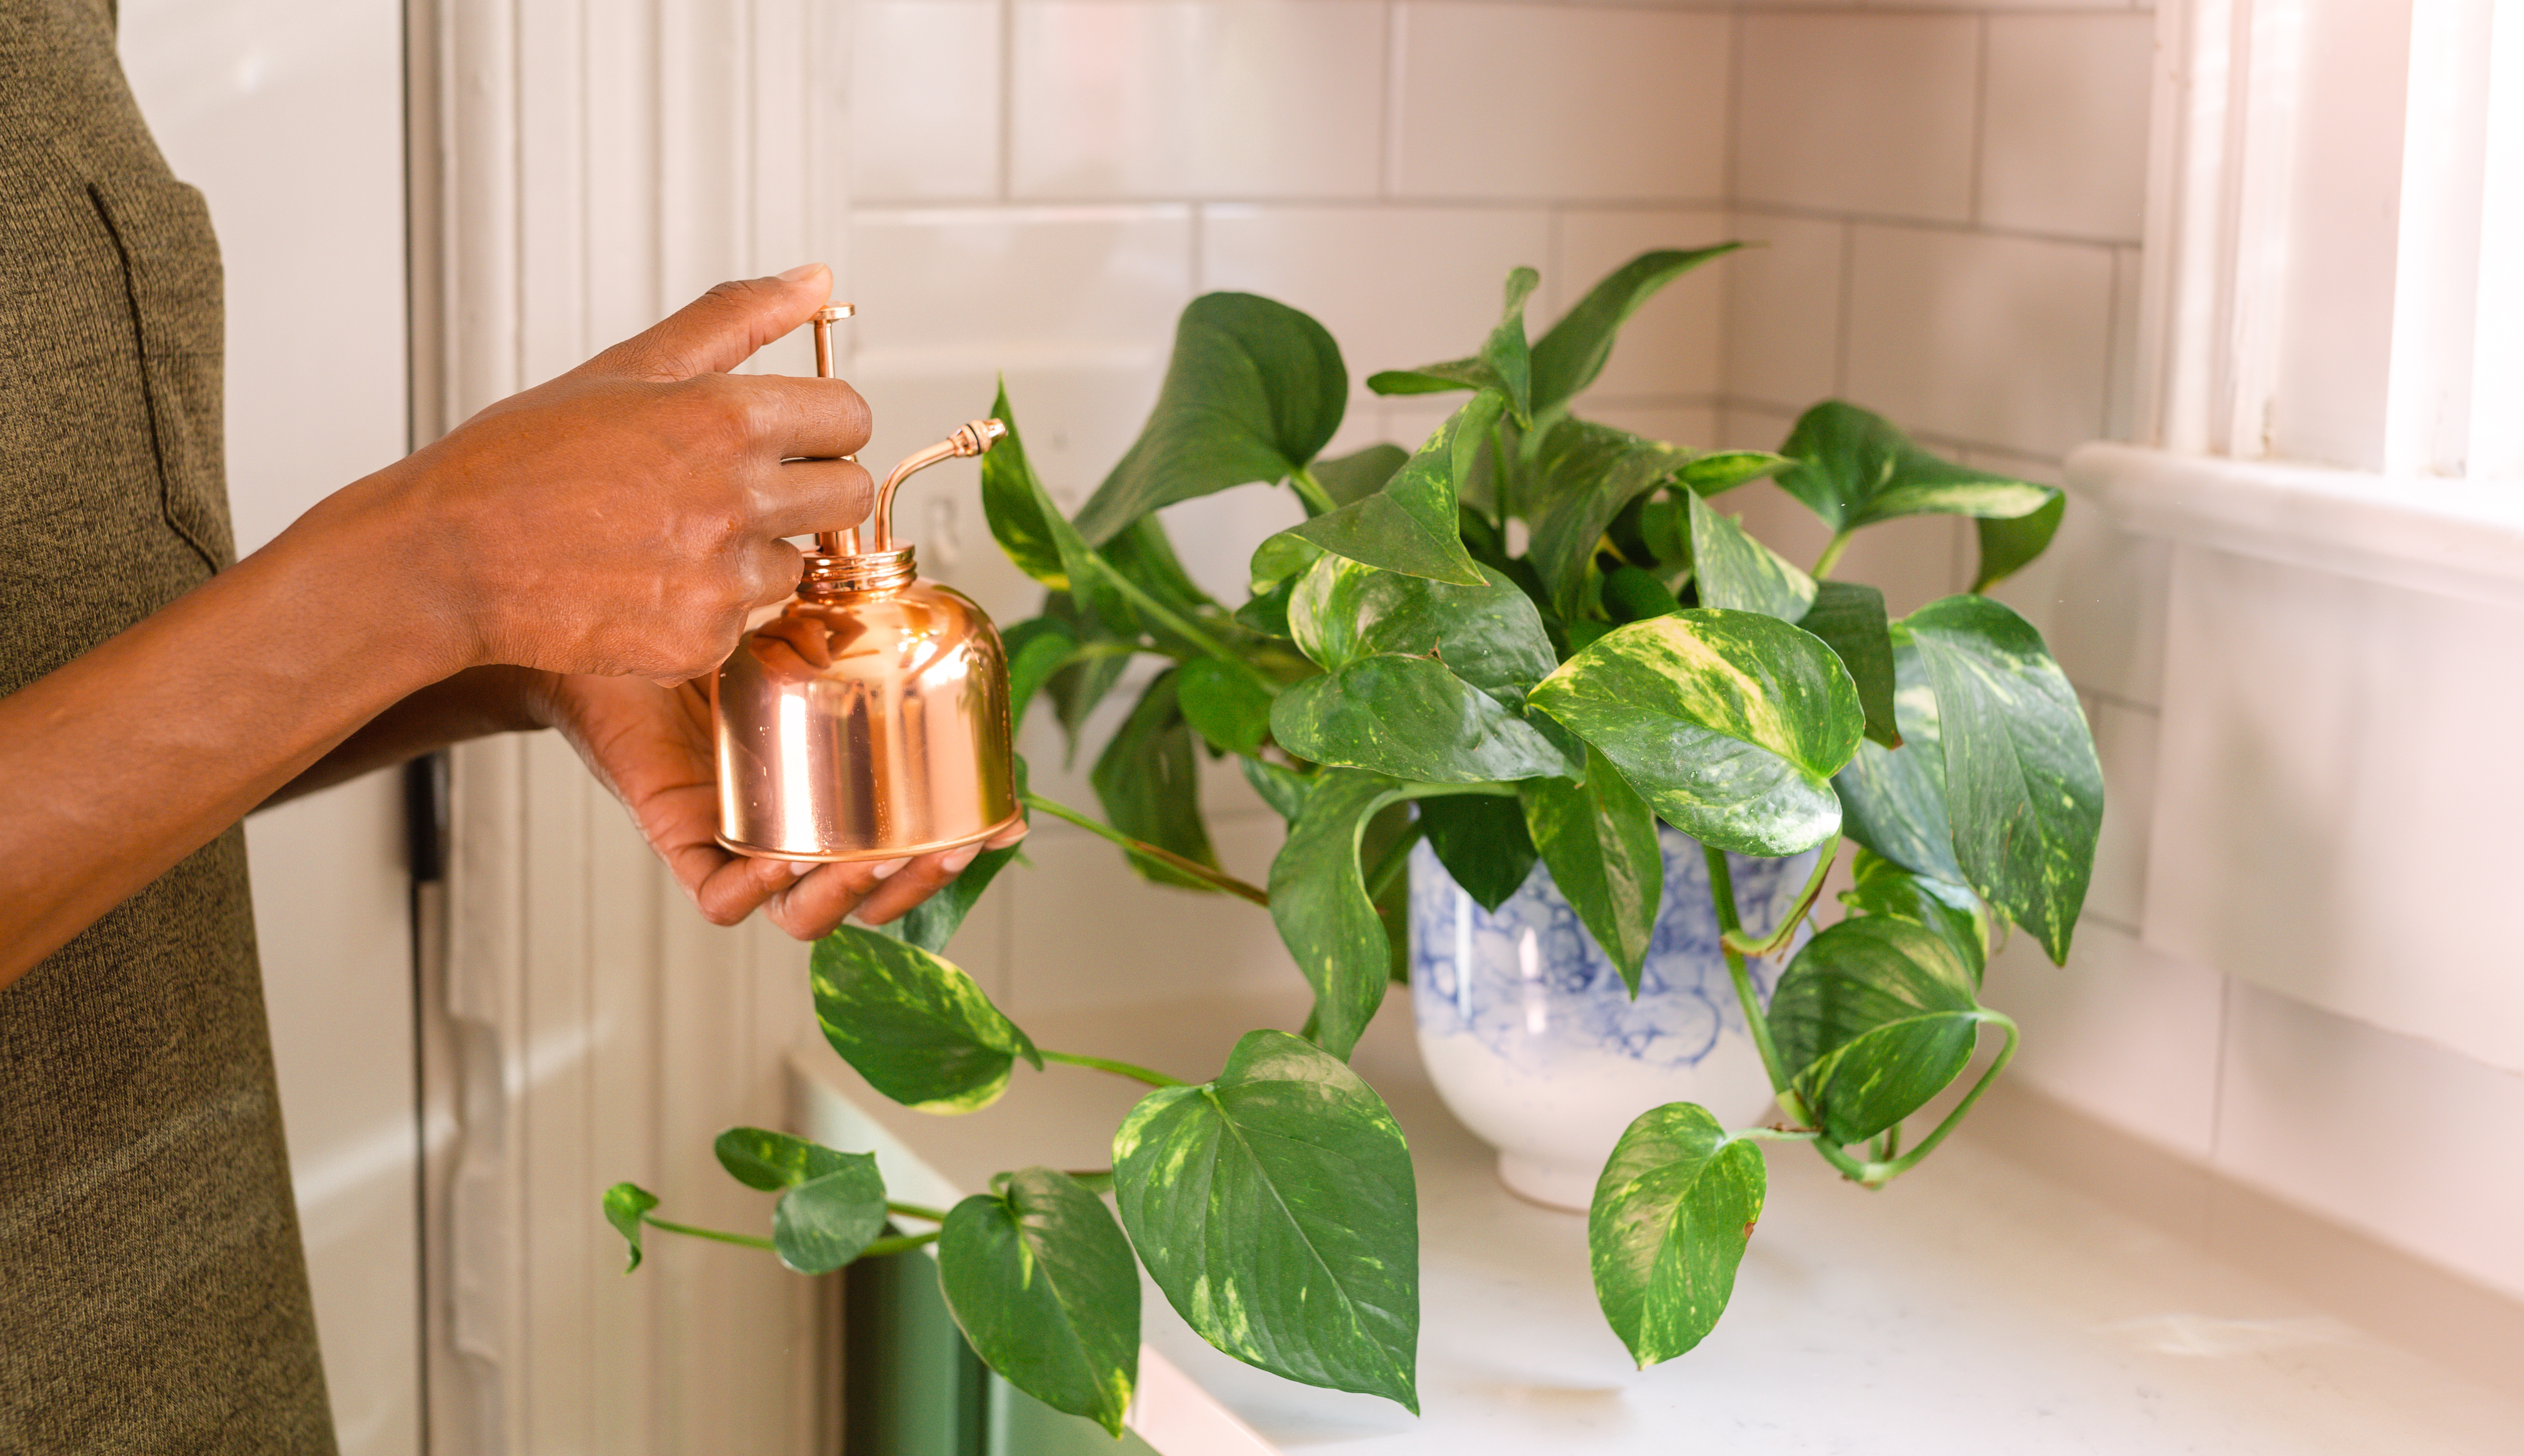 Trendy houseplant on counter being sprayed by copper mister